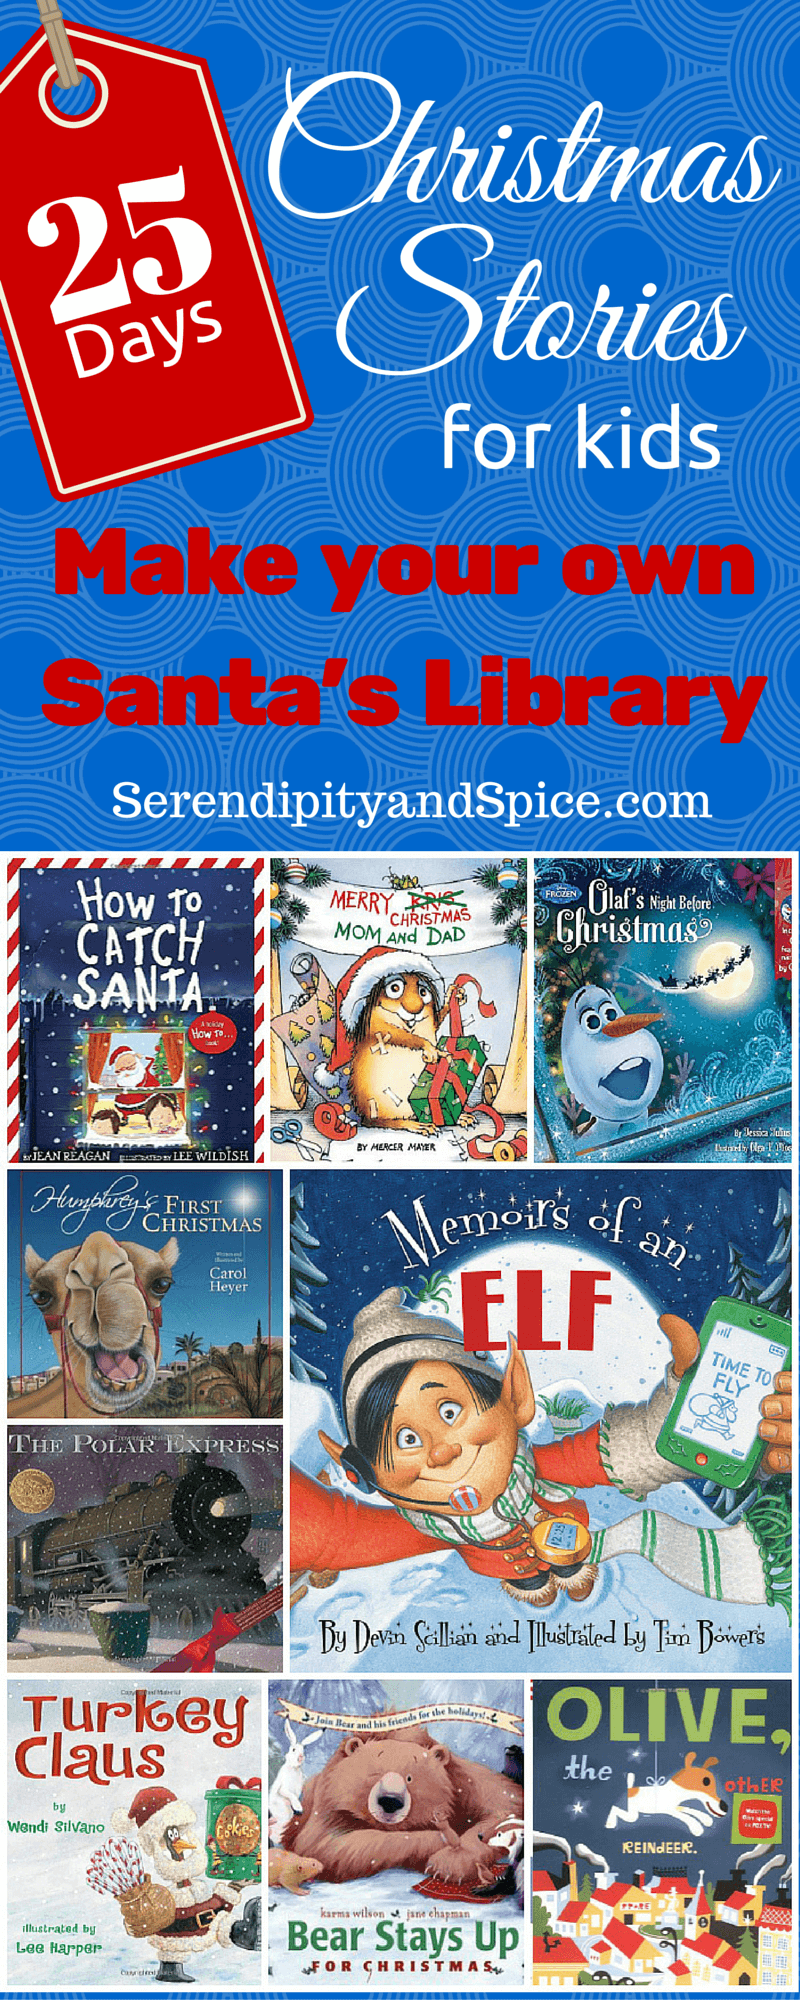 books christmas library santa toddler tradition children holiday serendipityandspice reading instant